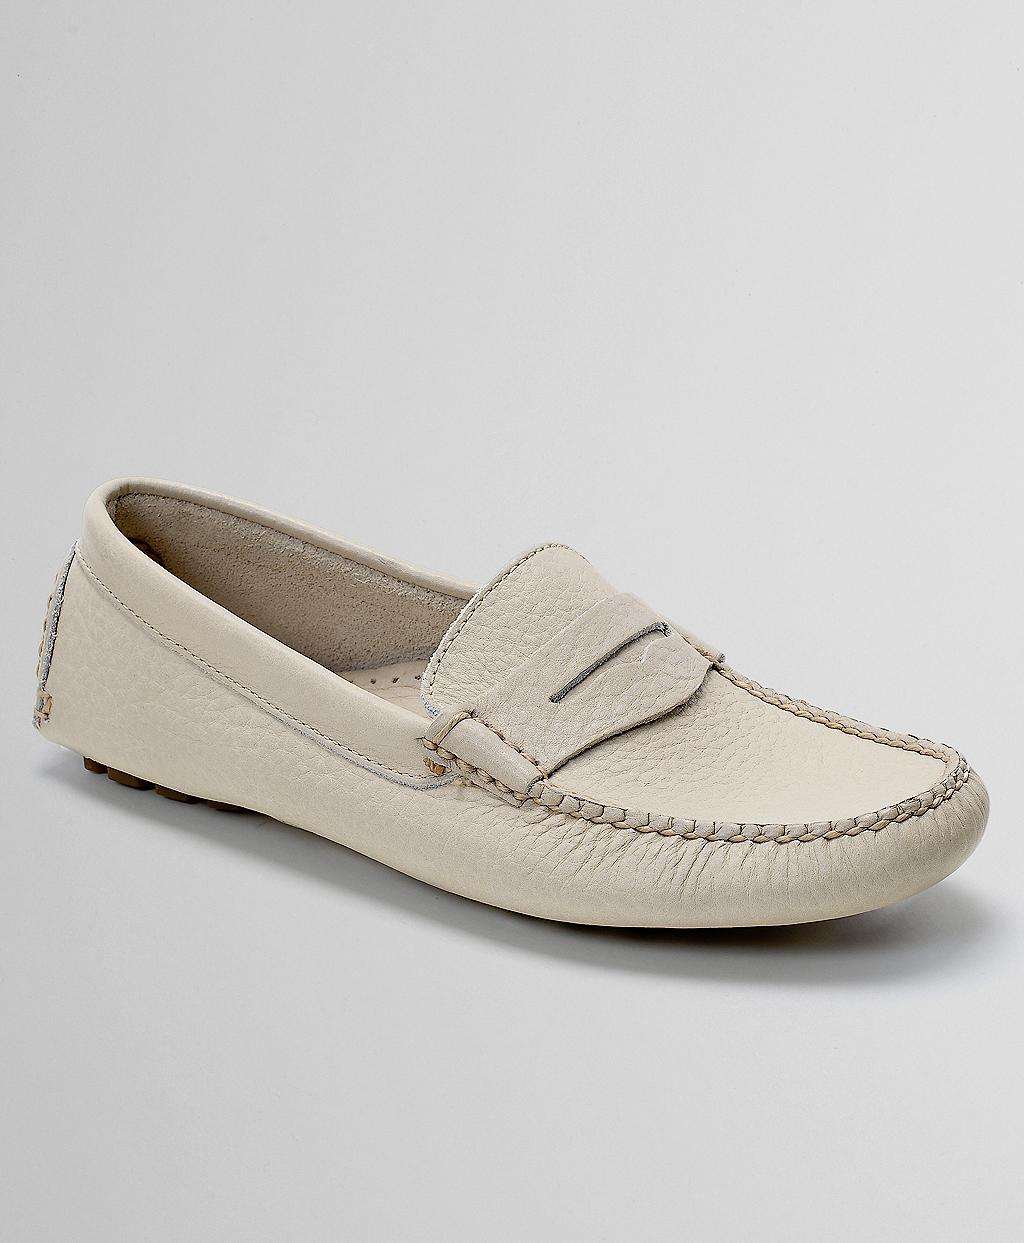 91228747f81 Lyst - Brooks Brothers Driving Penny Loafers in Natural